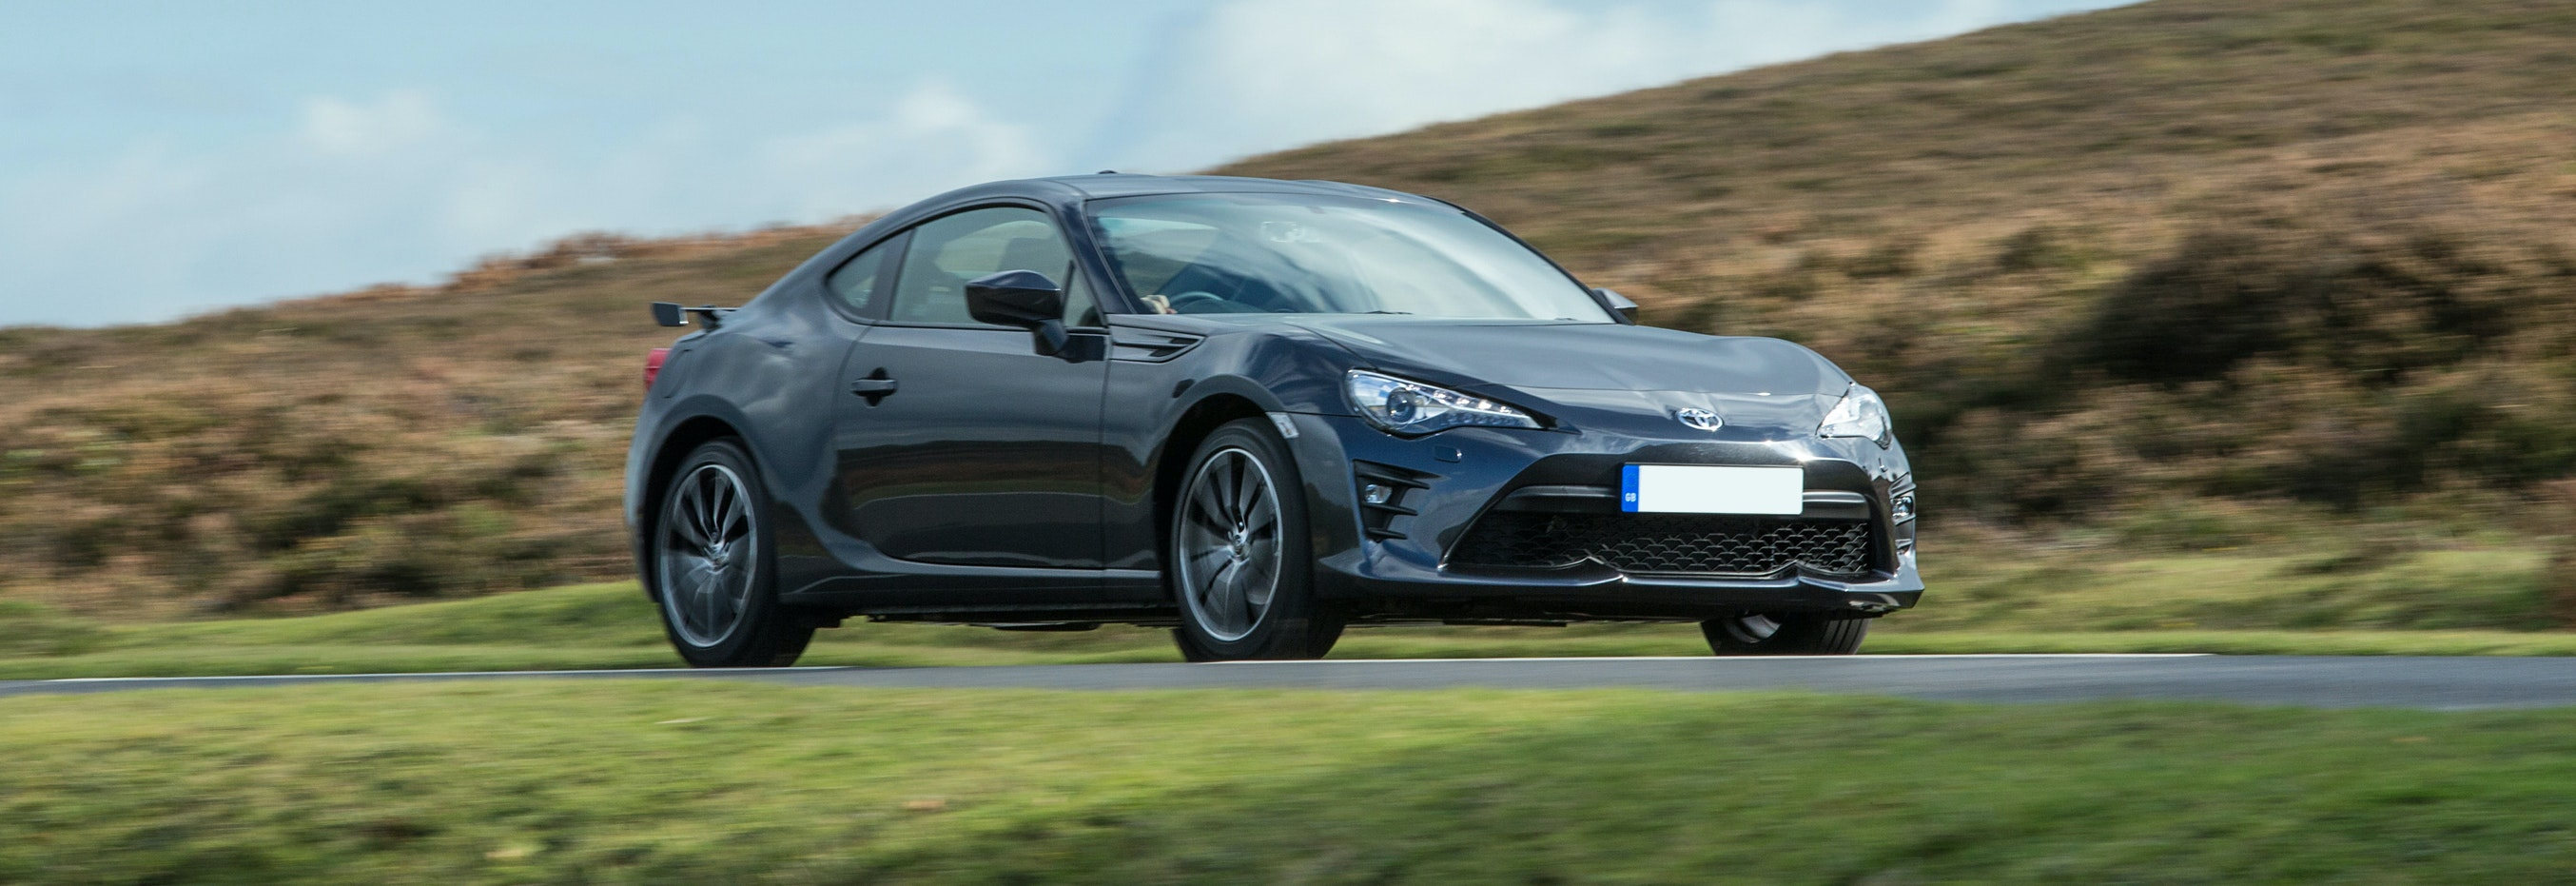 2018 Toyota Gt86 Grey Driving Front